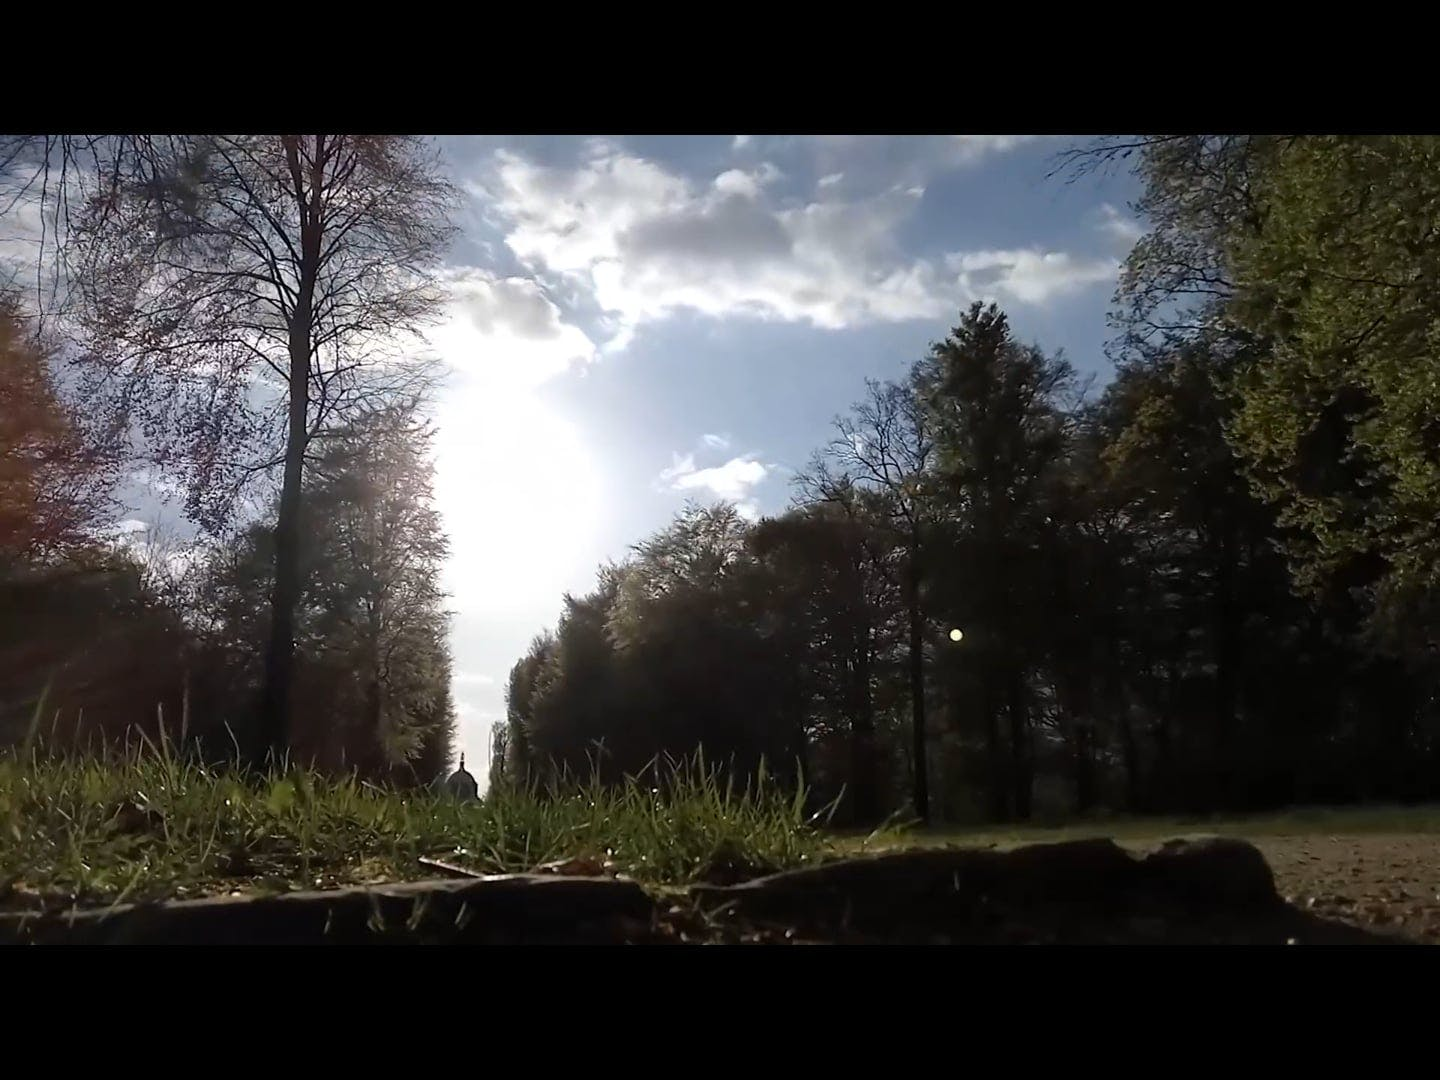 Time Lapse Video Of Clouds Over Trees